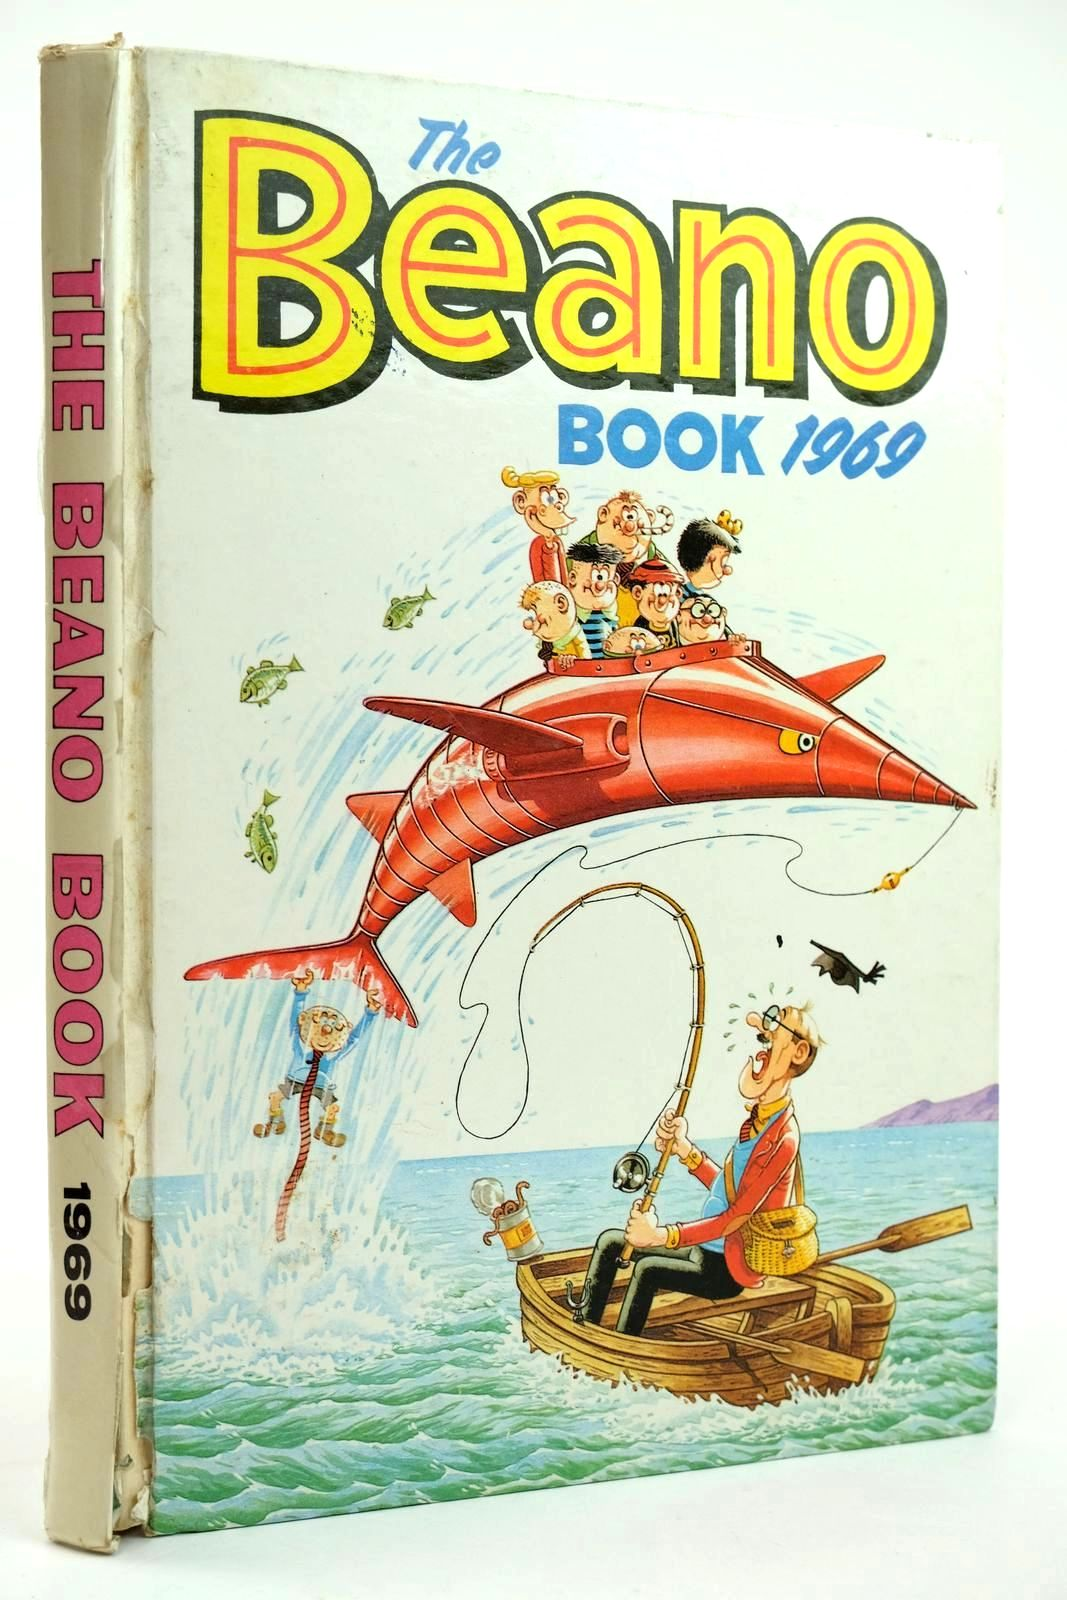 Photo of THE BEANO BOOK 1969- Stock Number: 2131960